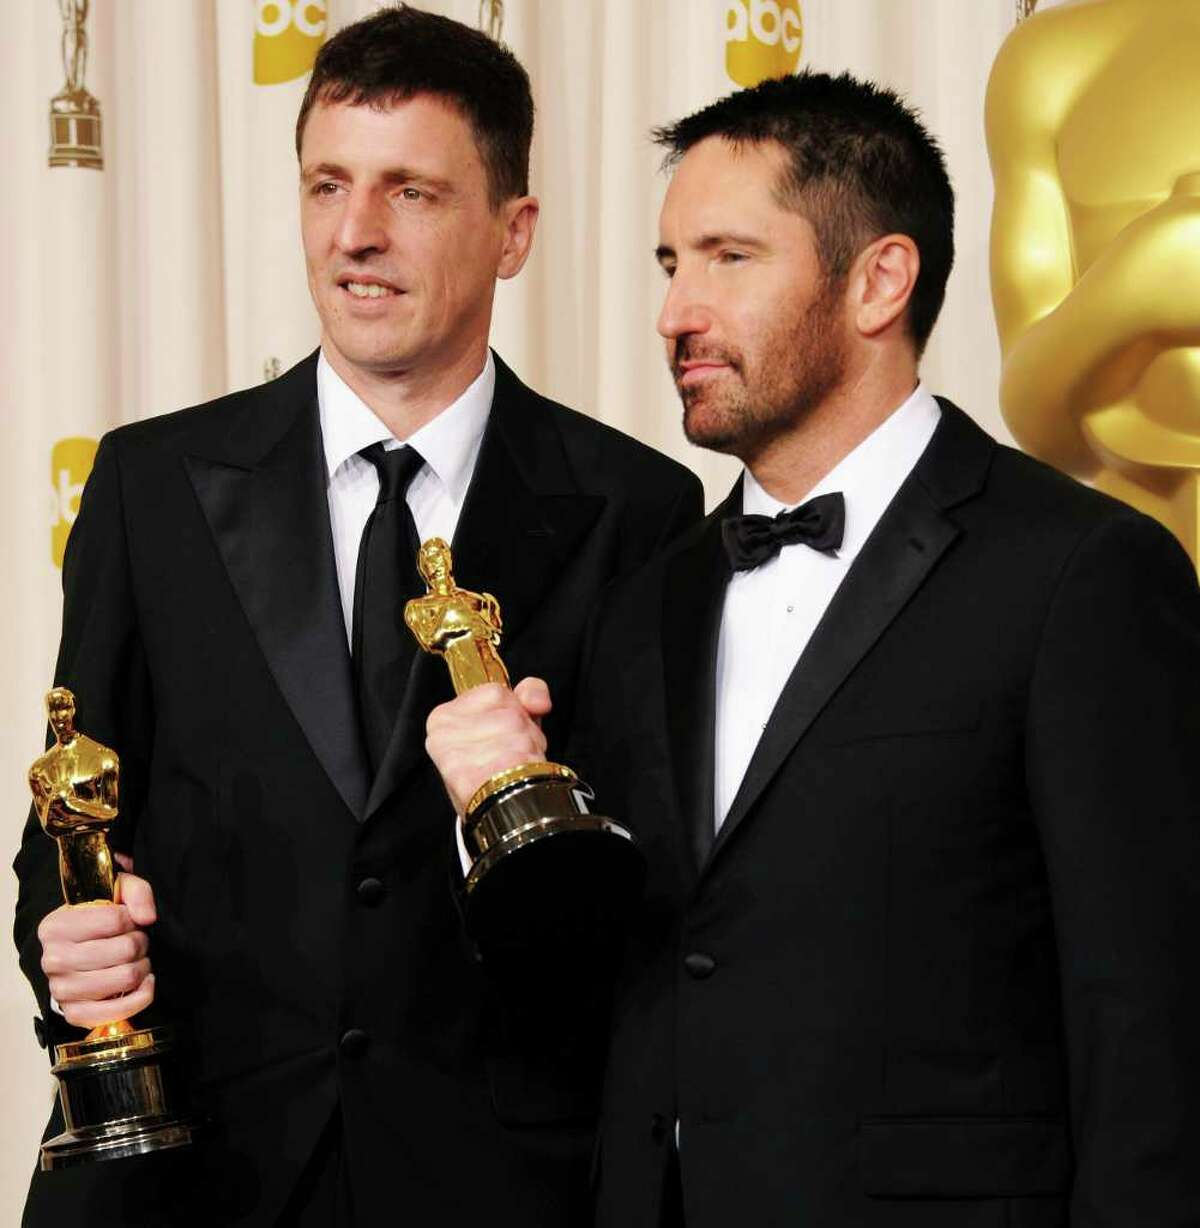 Atticus Ross (left) and Trent Reznor, winners of the award for Best Original Score for 'The Social Network', pose in the press room during the 83rd Annual Academy Awards held at the Kodak Theatre on February 27, 2011 in Hollywood, California.